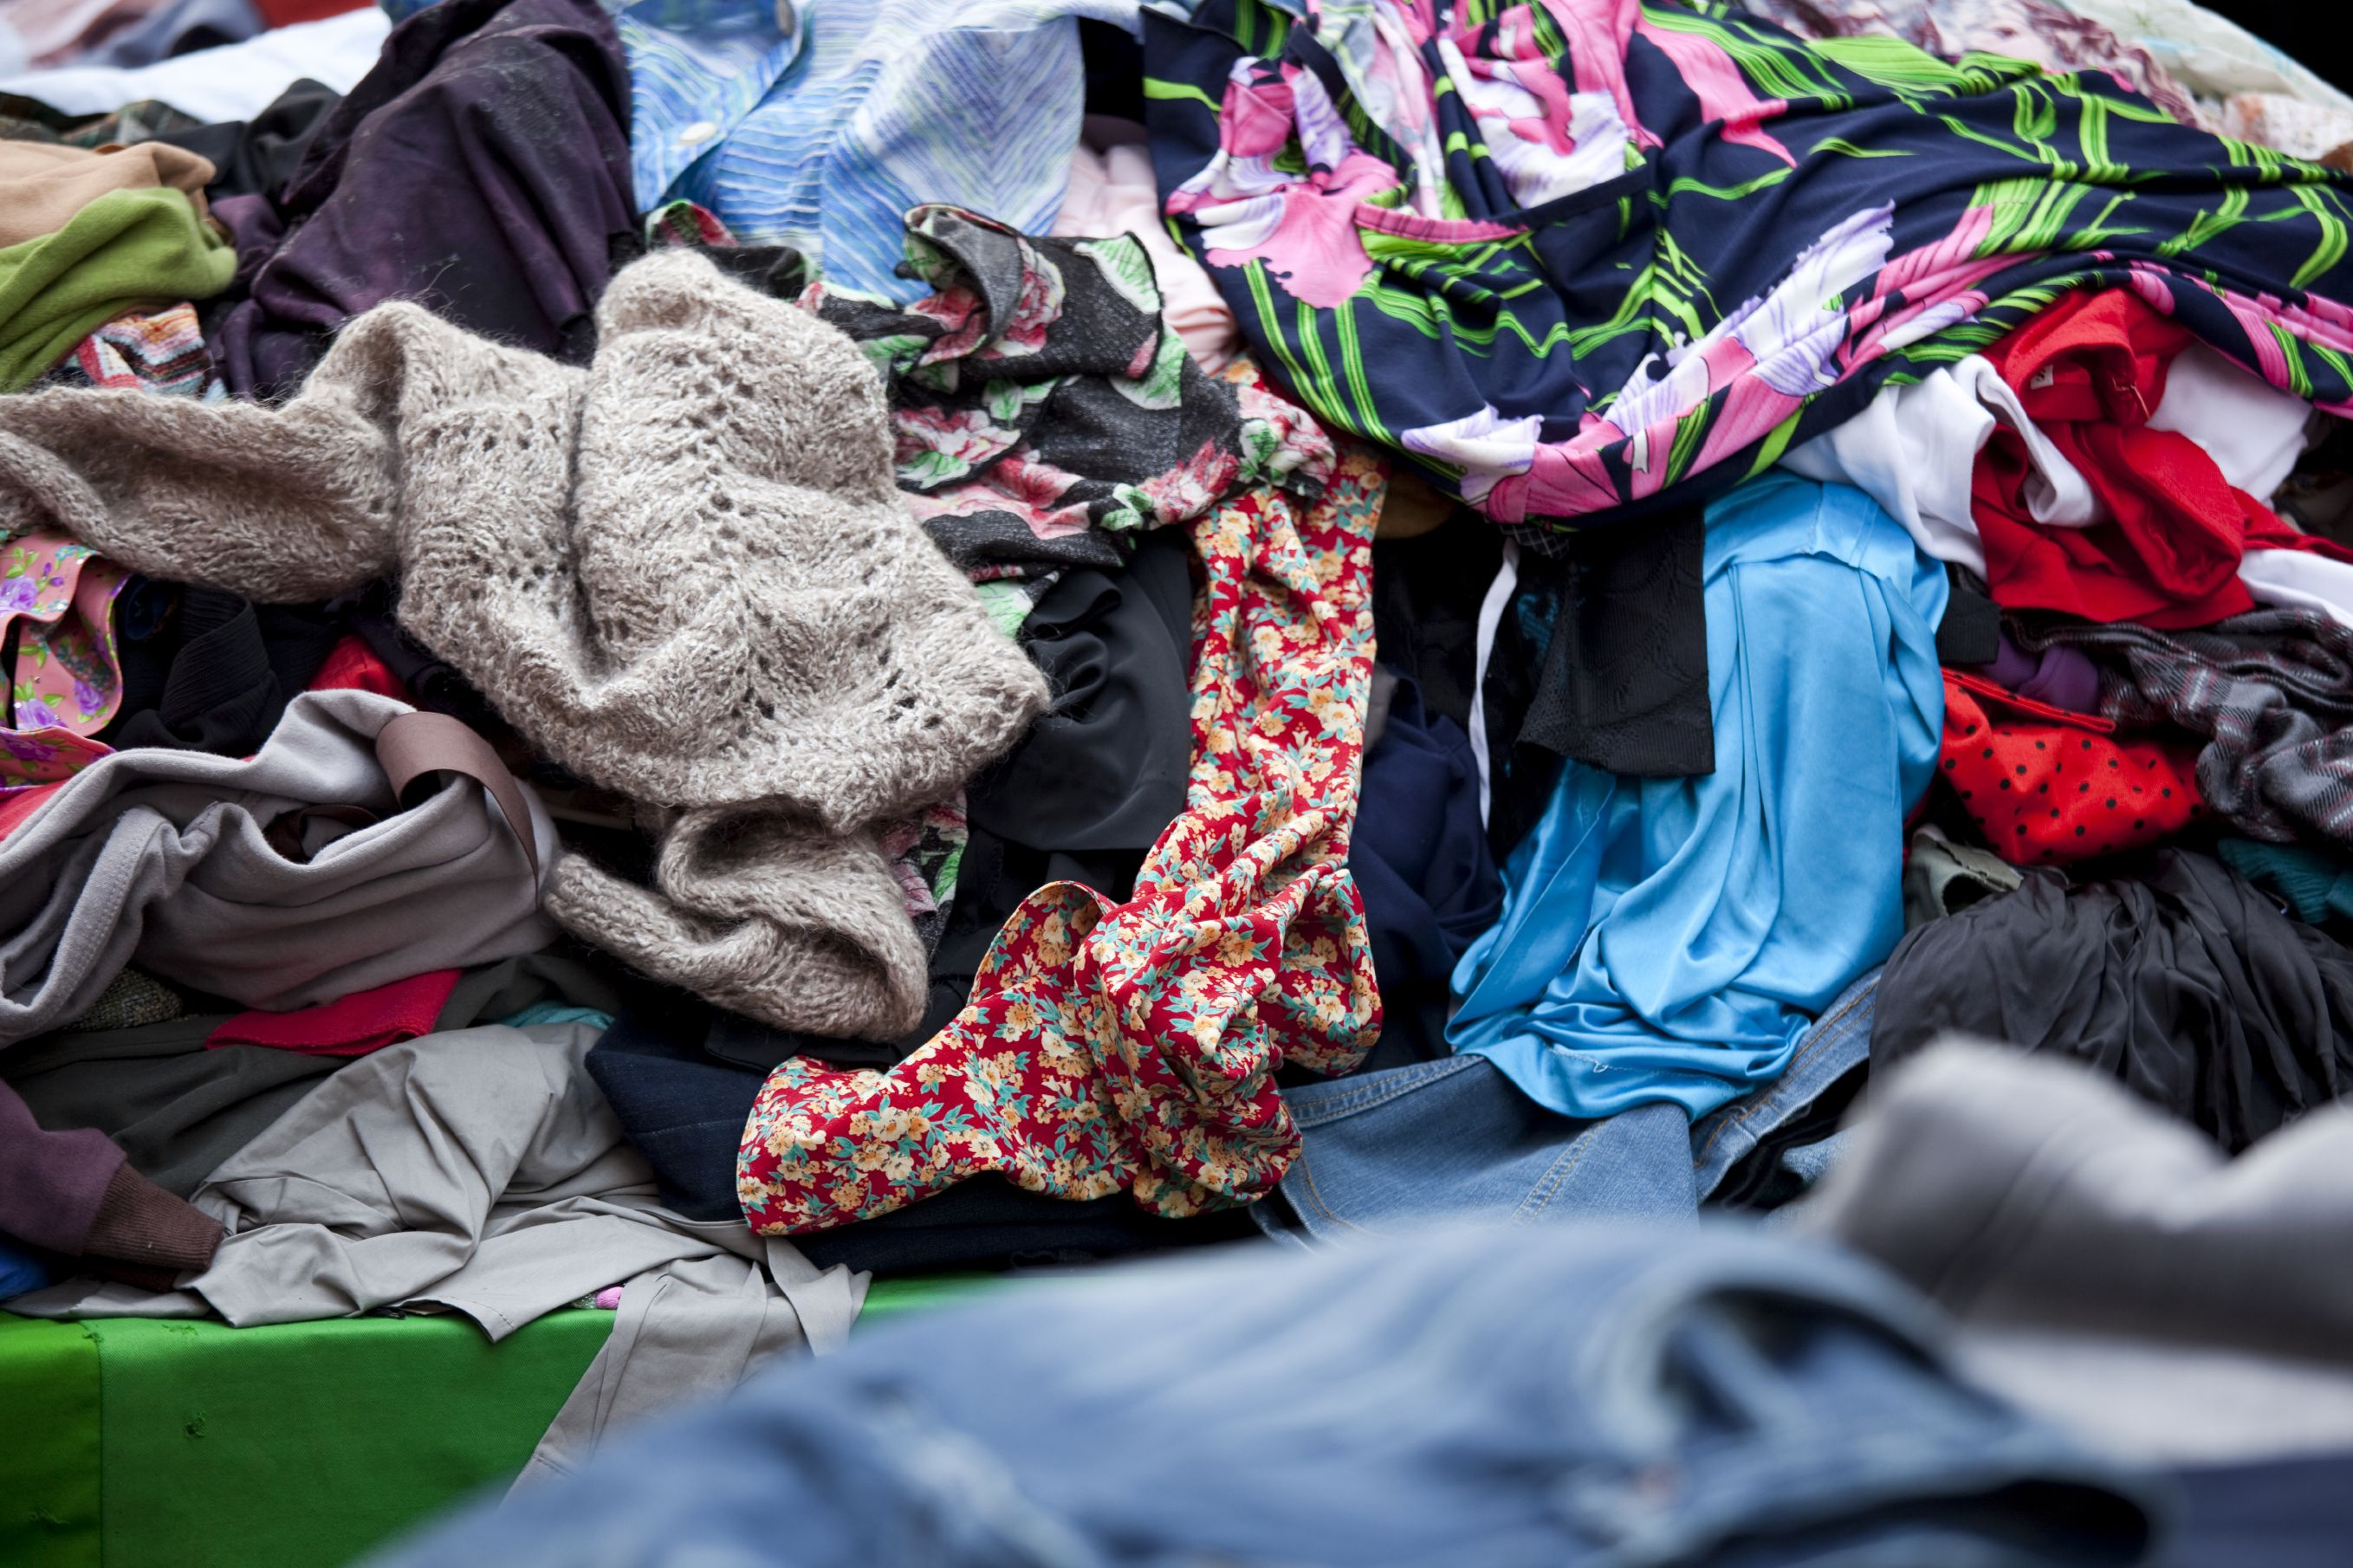 thurston county solid waste launches clothing recycling campaign